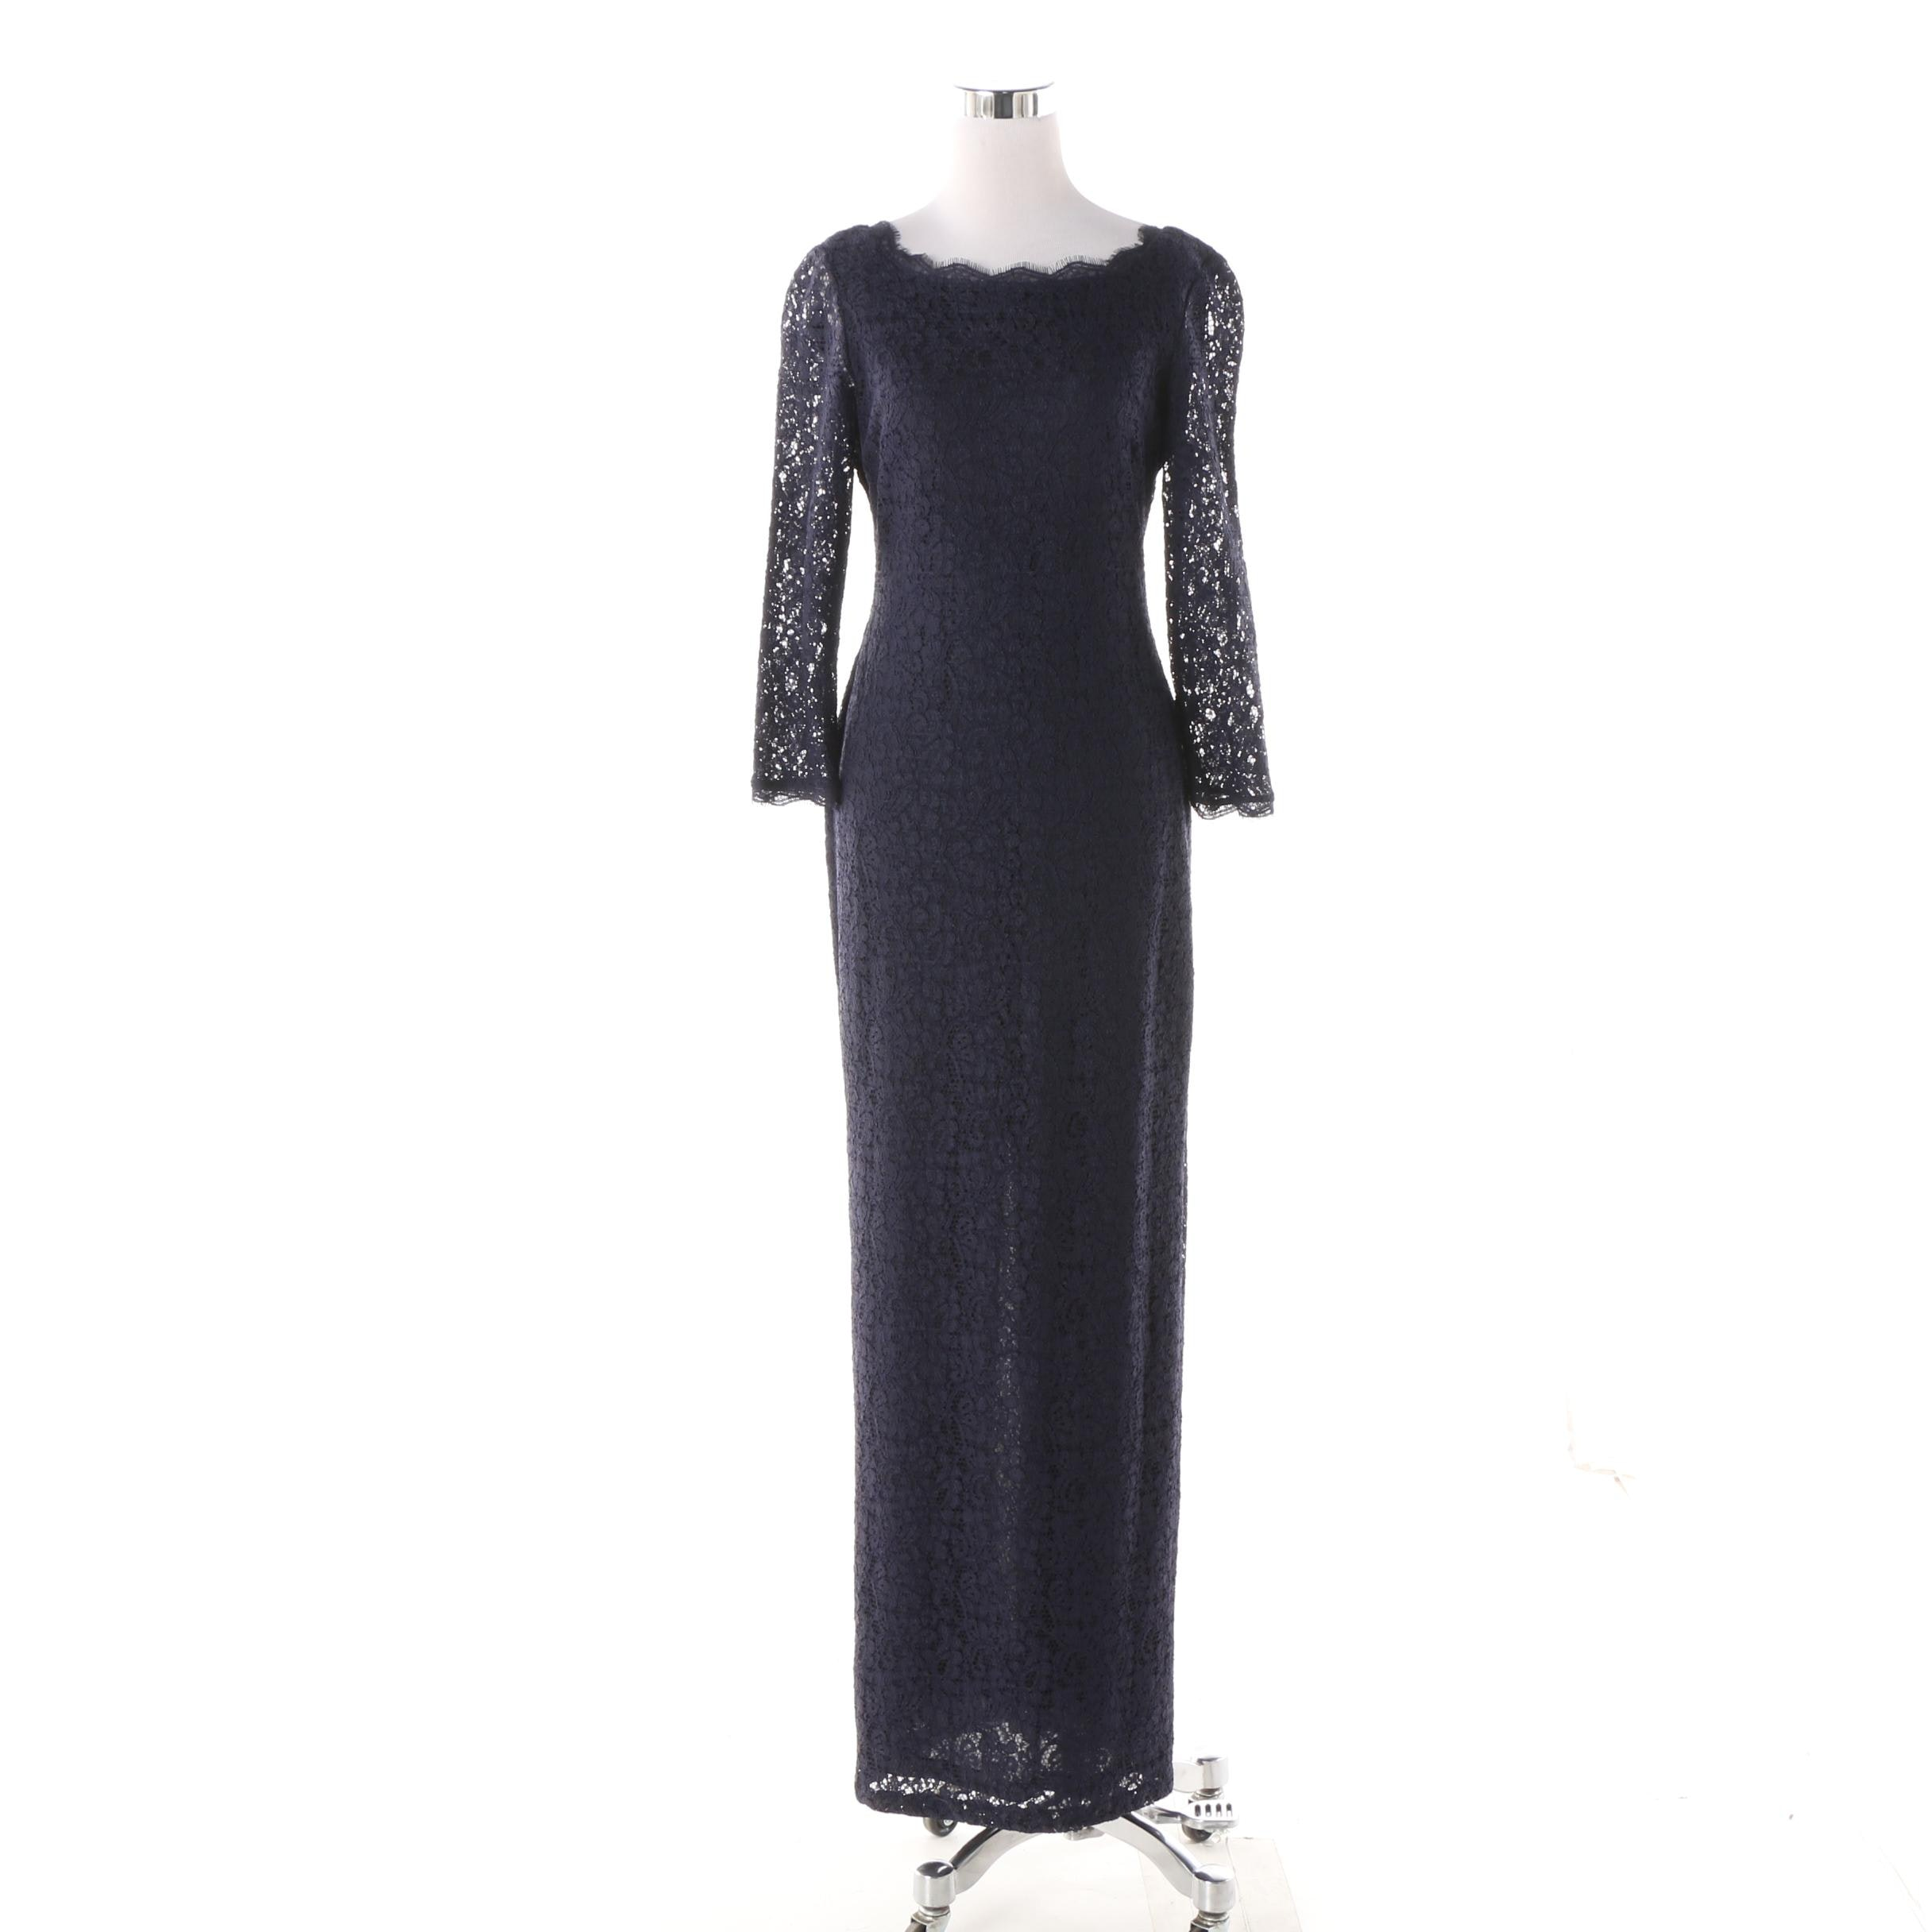 Adrianna Papell Navy Lace Gown with Back Slit